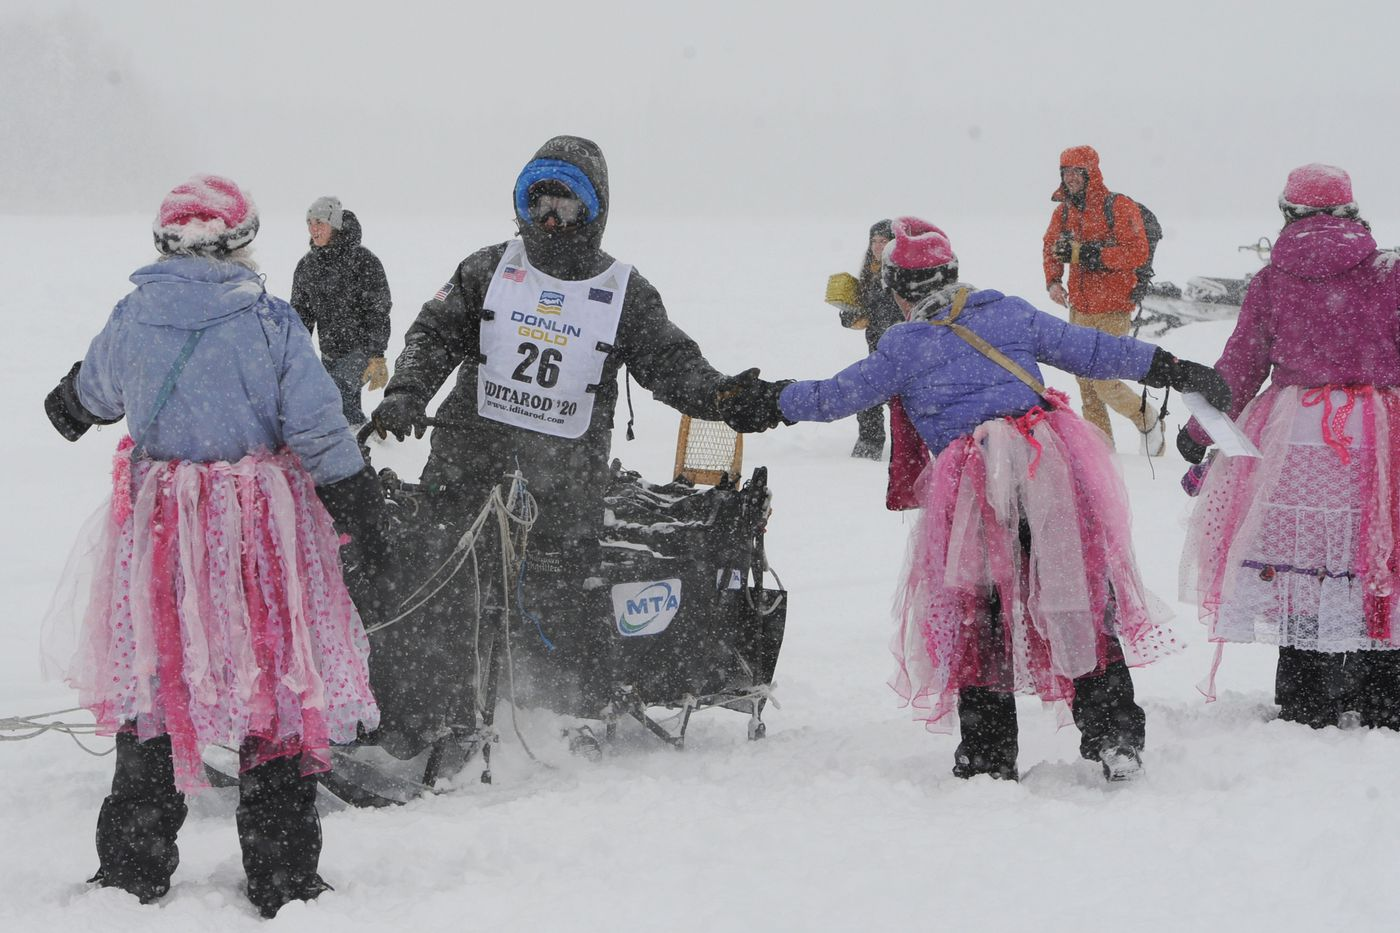 Four-time Iditarod champion Martin Buser is greeted by fairies during the restart of the Iditarod Trail Sled Dog Race in Willow on Sunday. (Bill Roth / ADN)